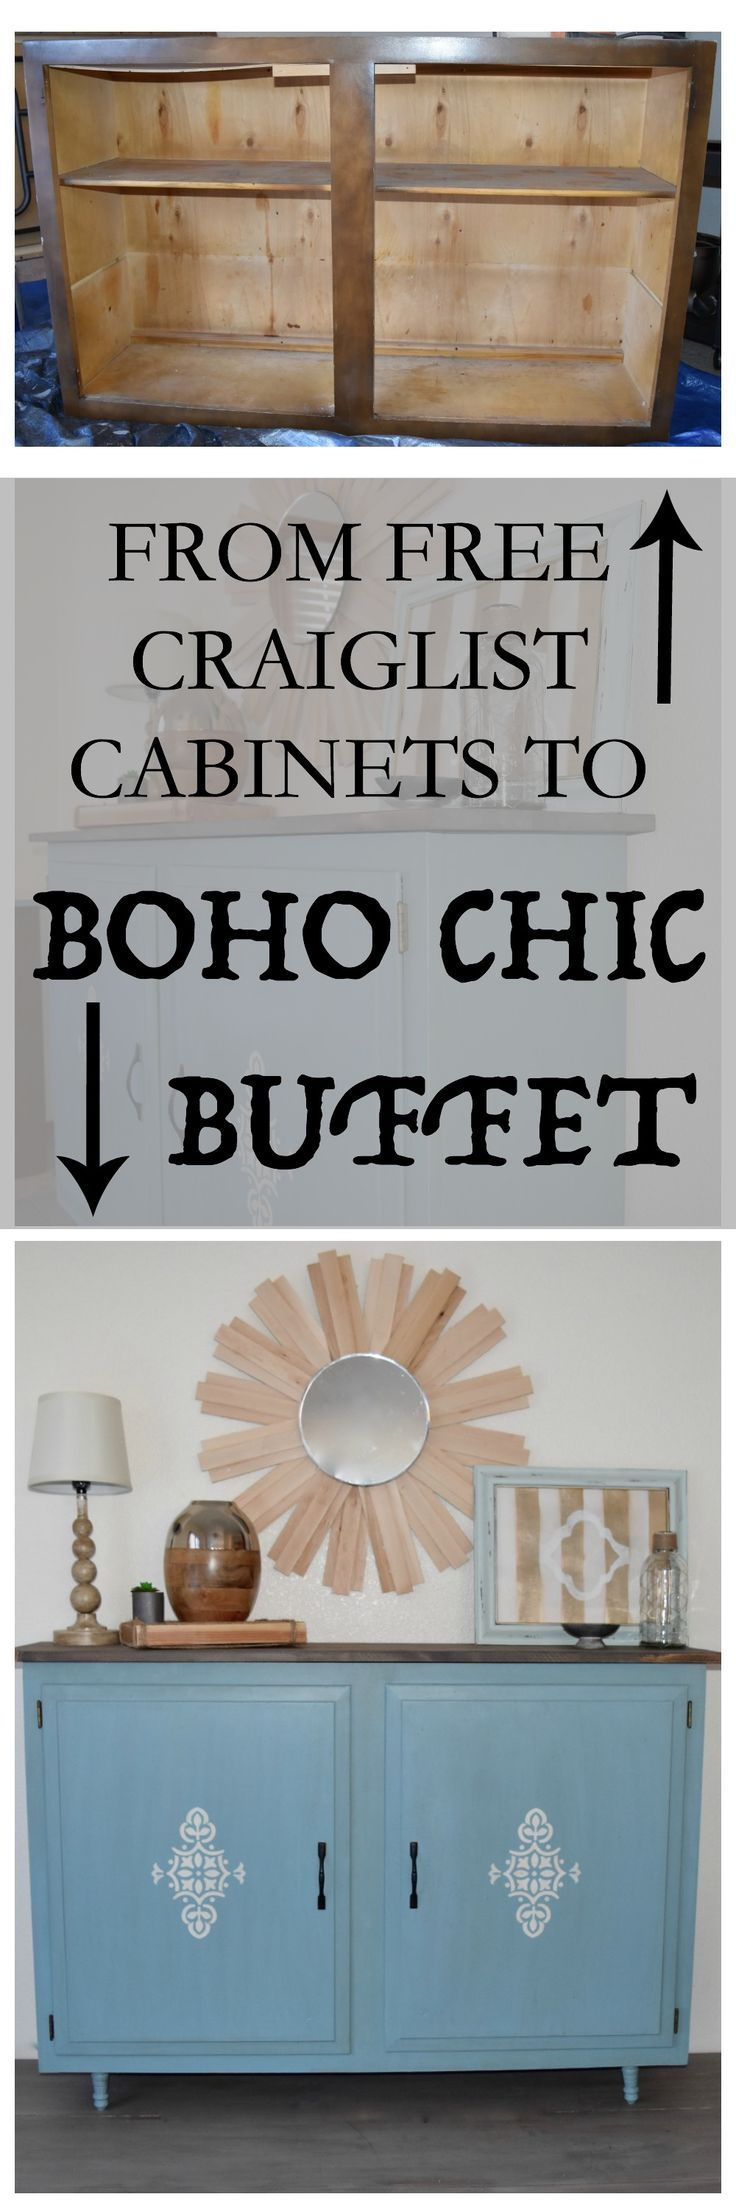 How To Upcycle Old Kitchen Or Laundry Cabinets Turn Old Cabinets Into A Console Buffet Or Side Table R Furniture Makeover Diy Room Storage Diy Upcycle Decor